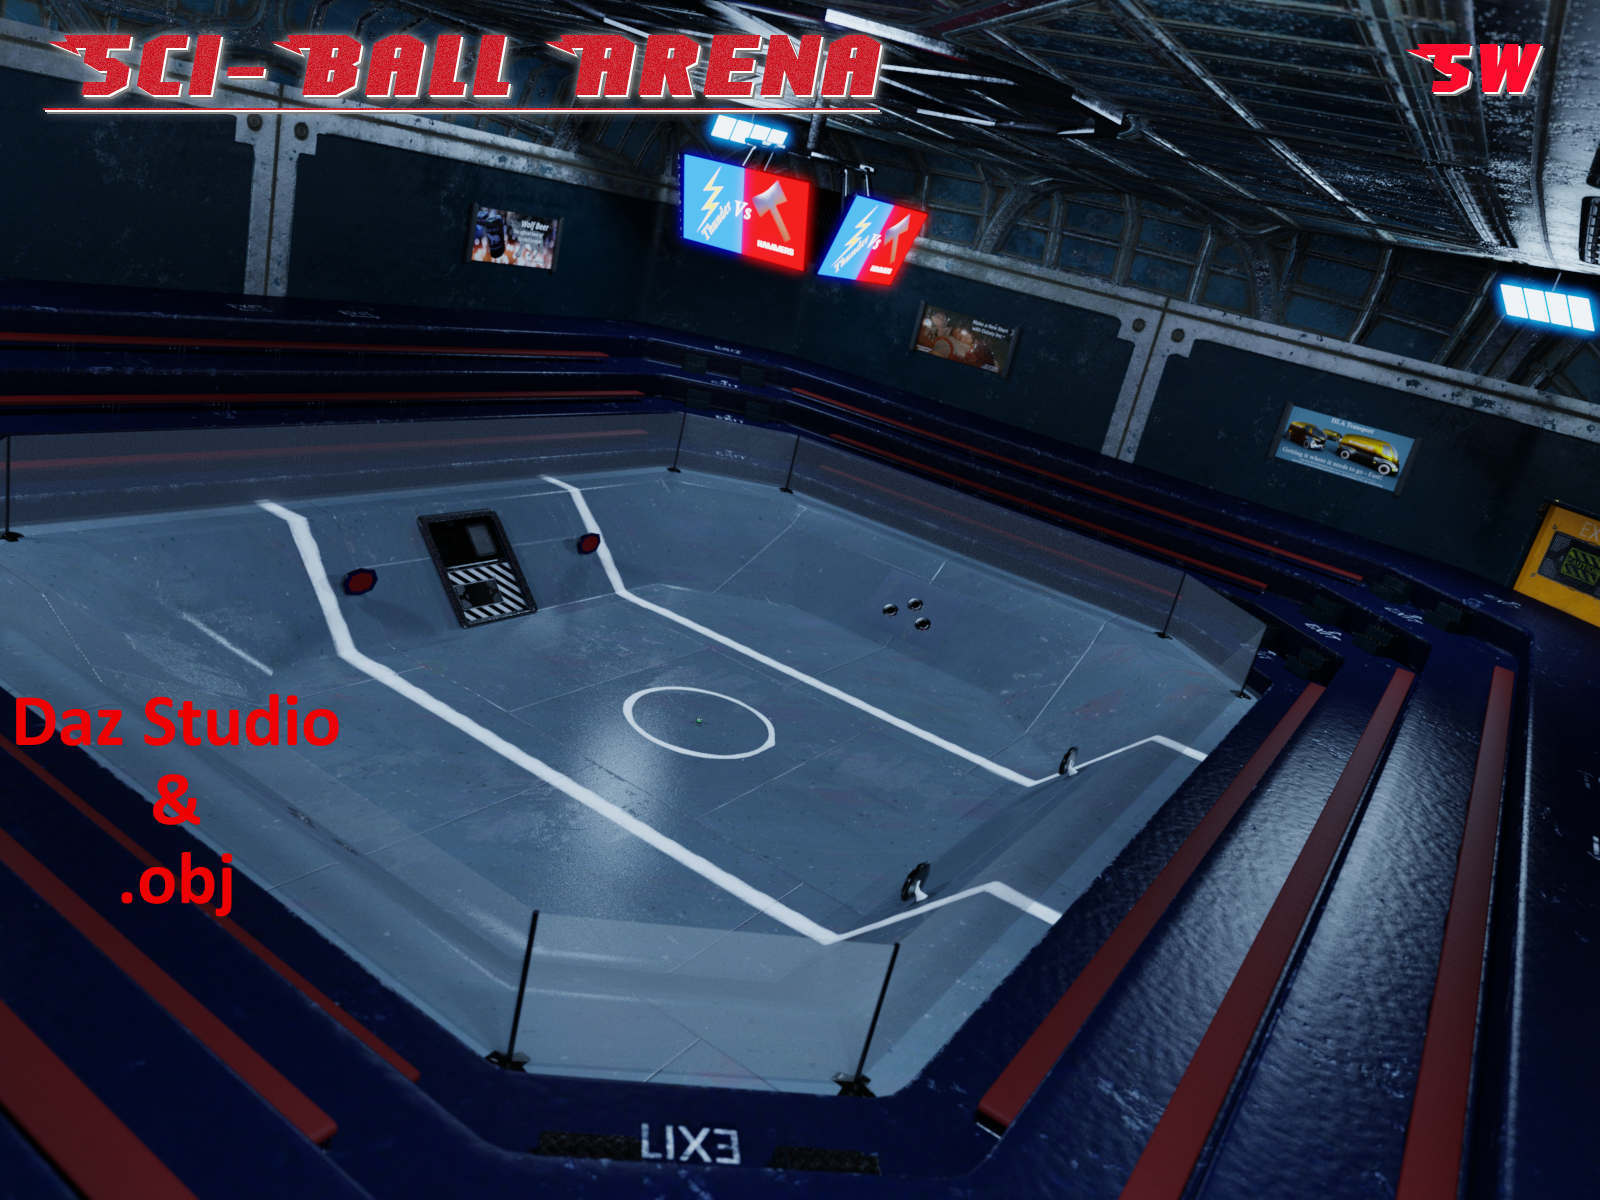 Sci-Ball Arena - SW